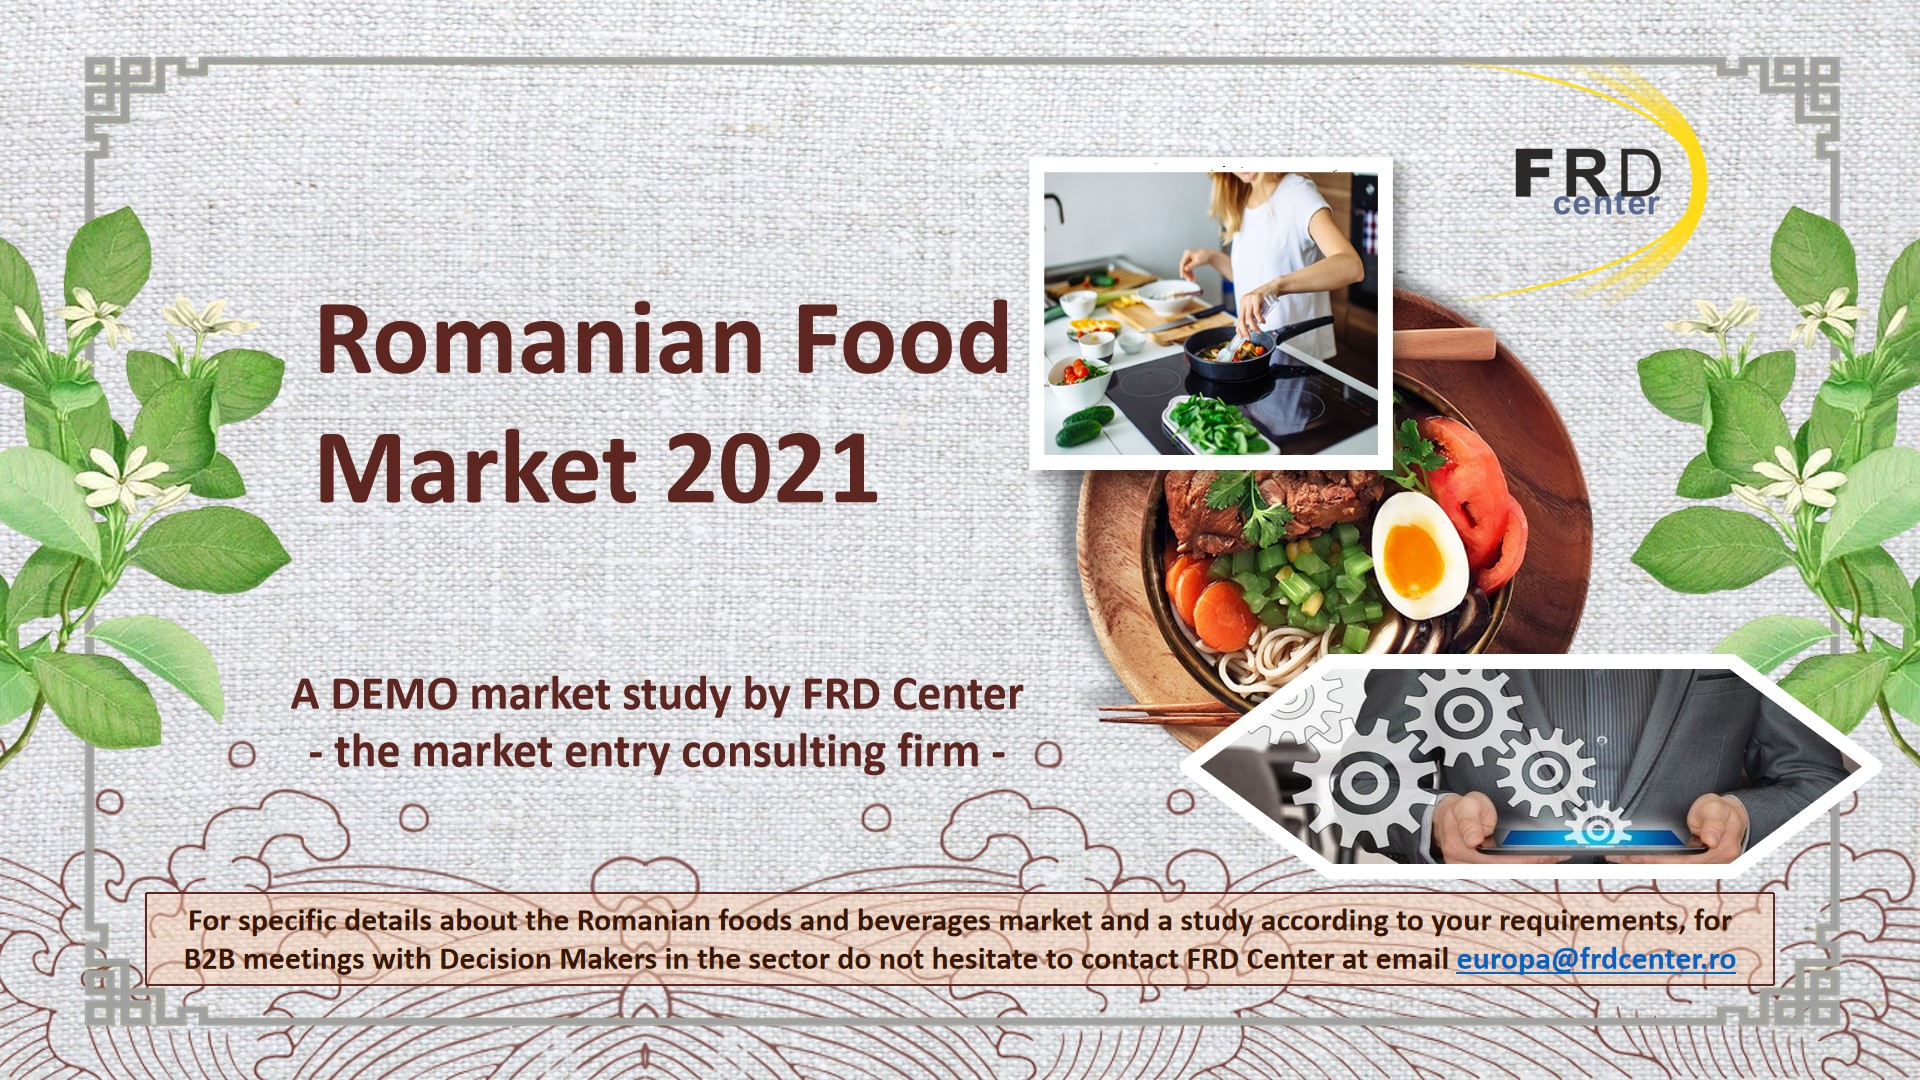 Romanian Food Market - potential new opportunities during the COVID19 pandemic